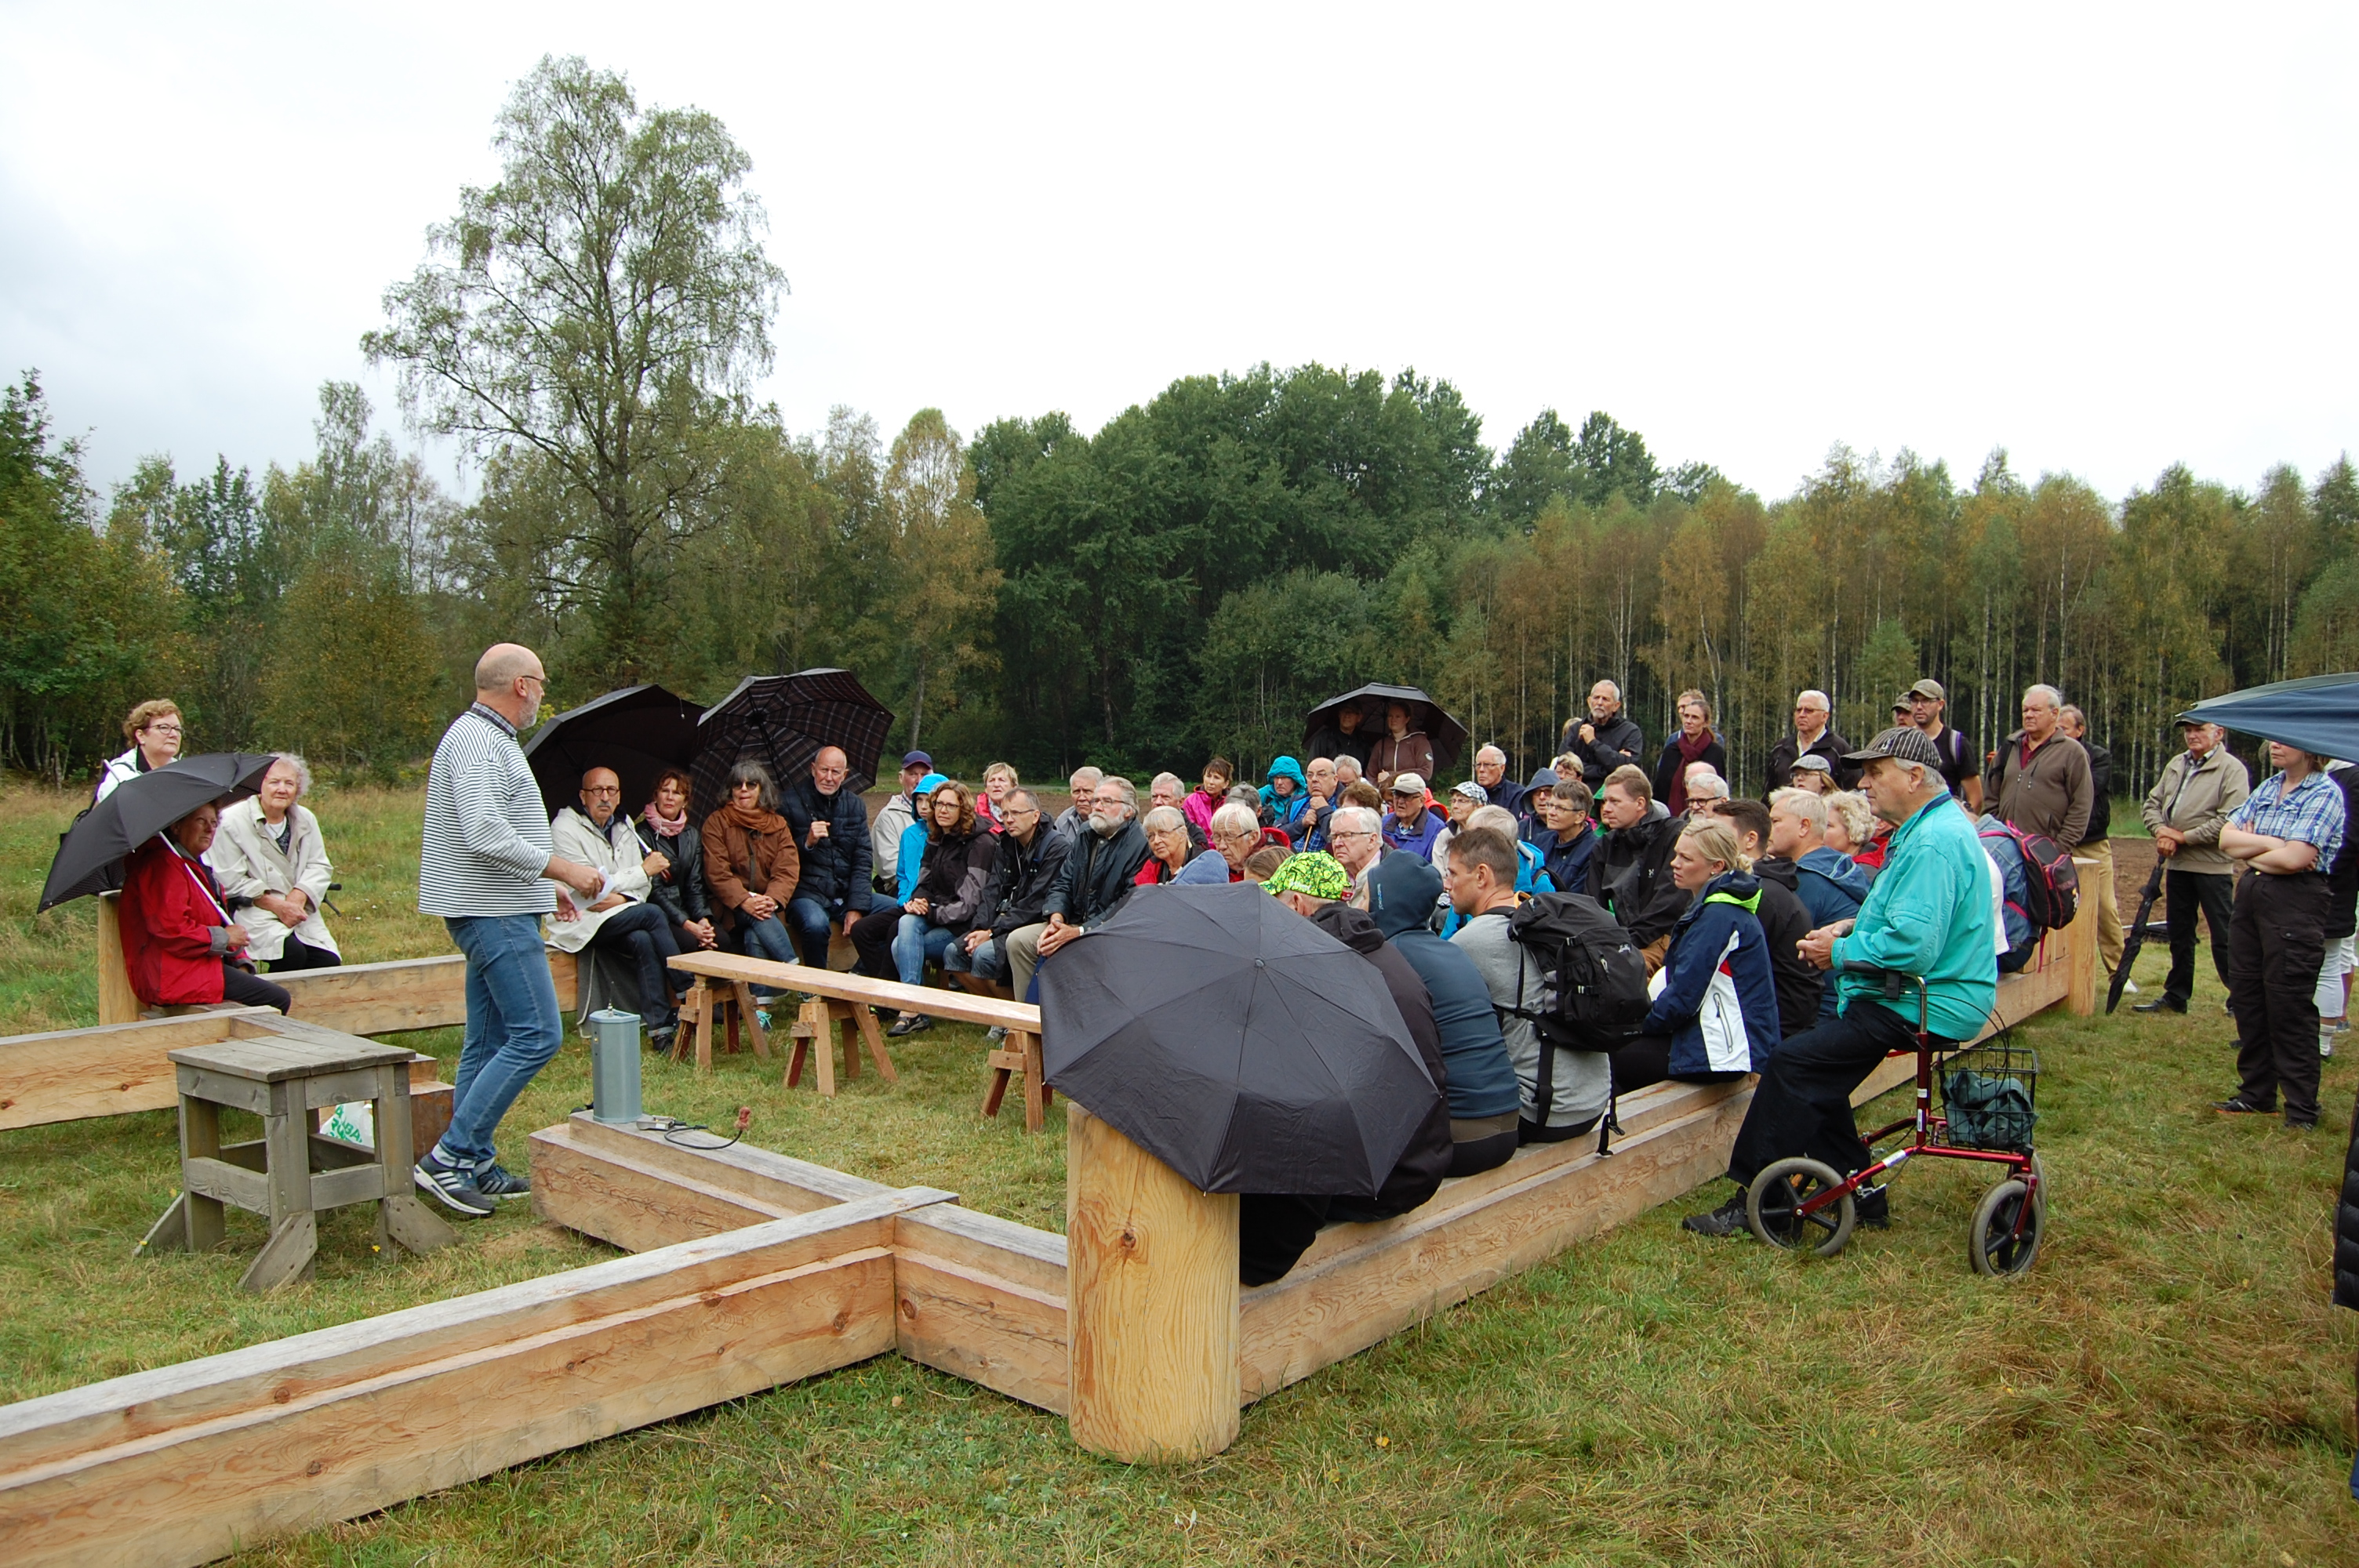 invigning-av-kapellet-i-sam-11-sept-2016